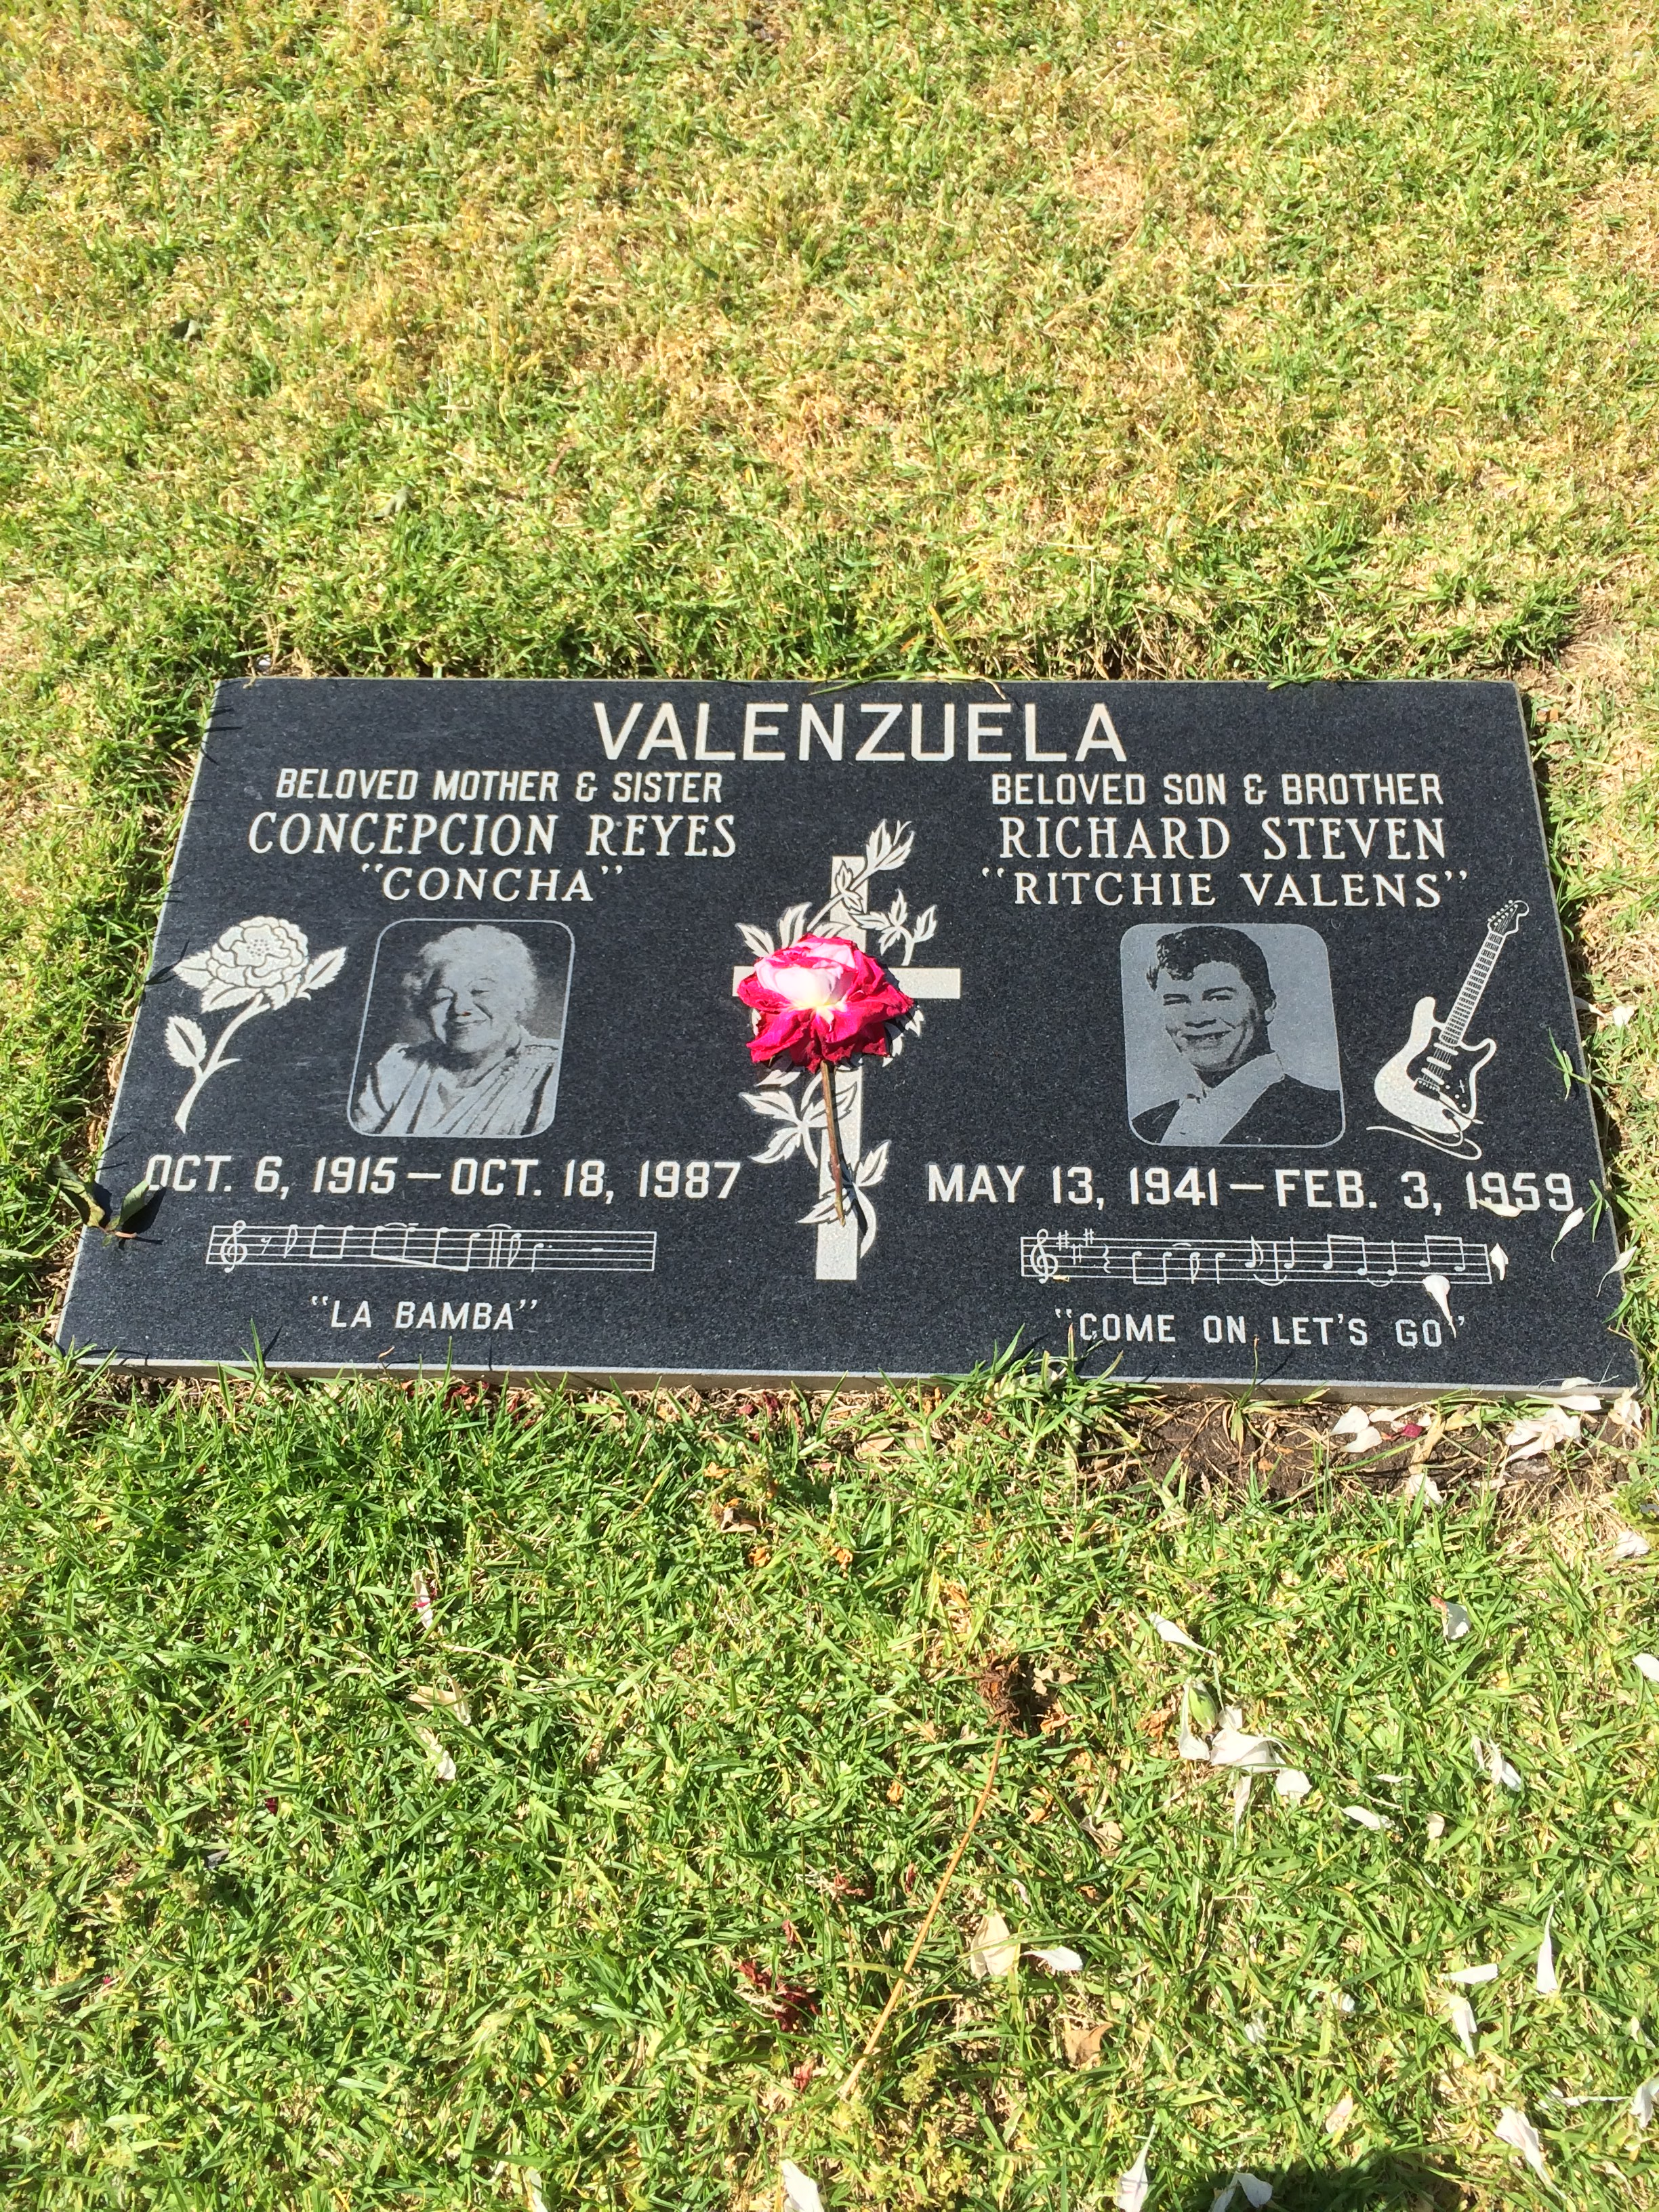 Grave of Ritchie Valens at San Fernando Mission Cemetery. Valens' mother, Concepcion, who died in 1987, is buried alongside him.